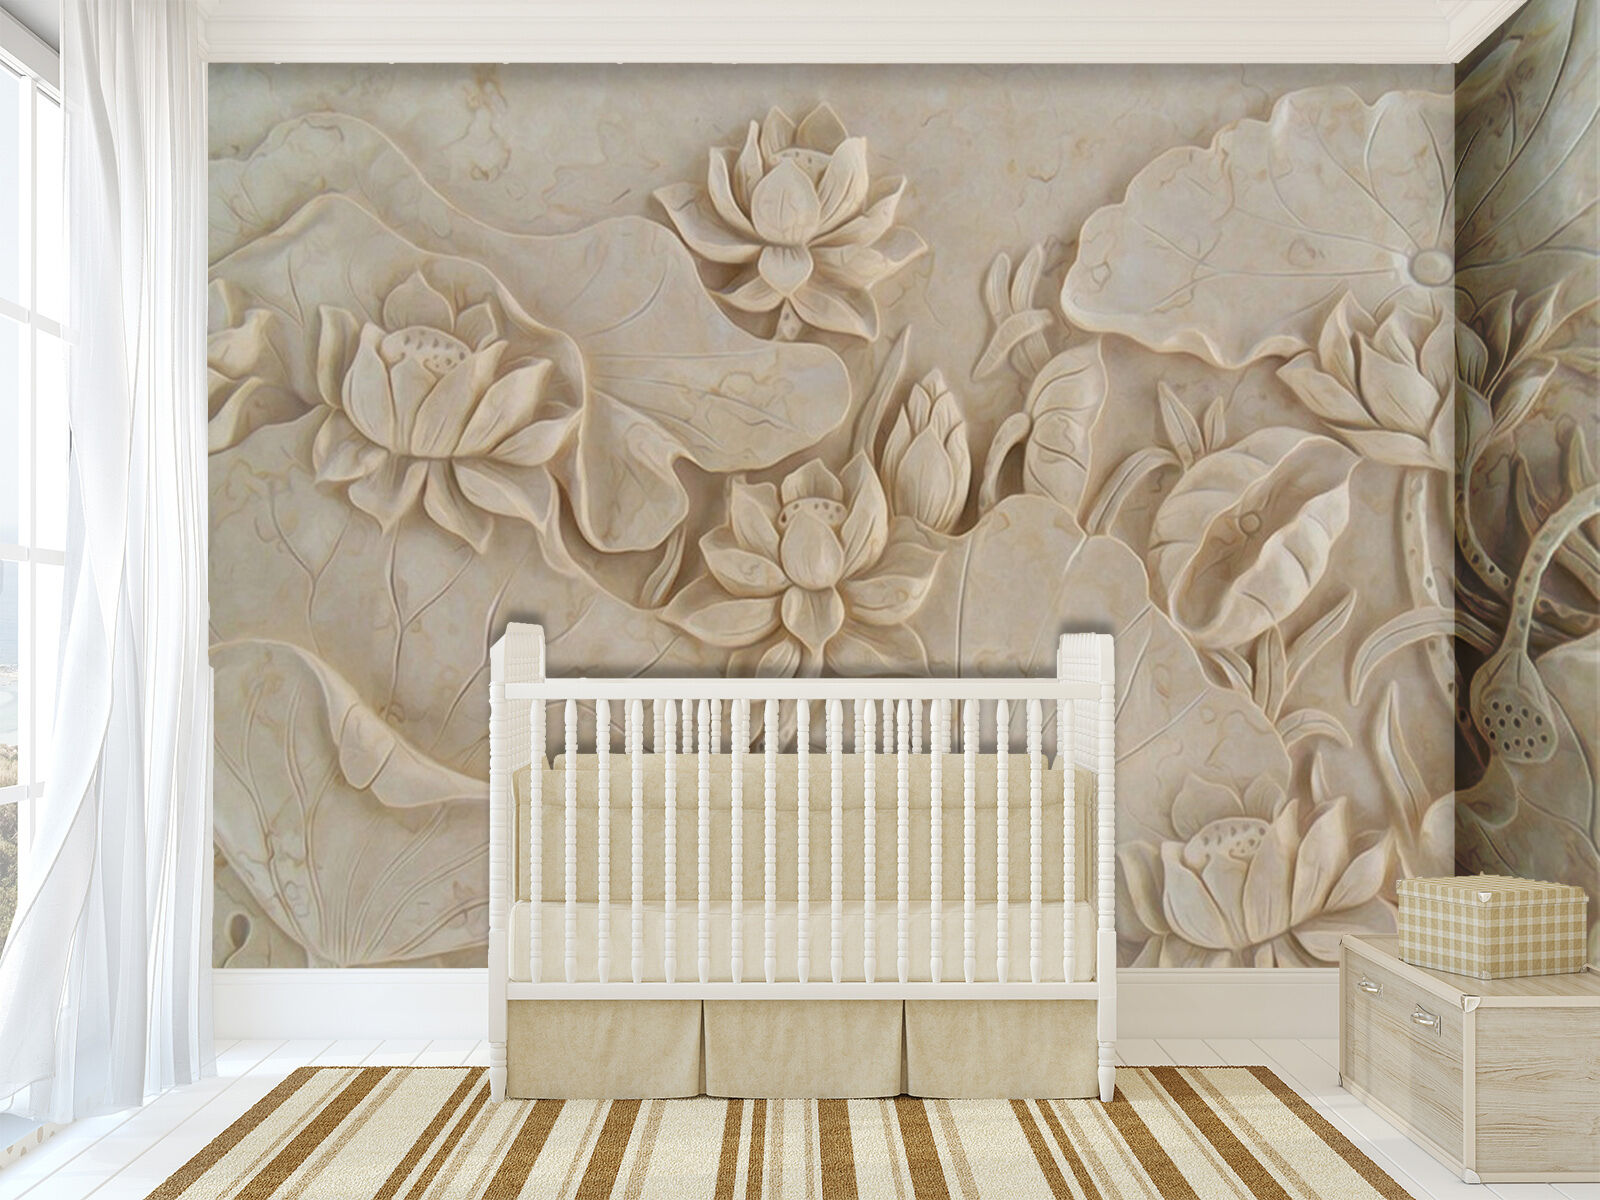 3D Lotus leaf Relief Wall Paper wall Print Decal Wall Deco Indoor wall Mural